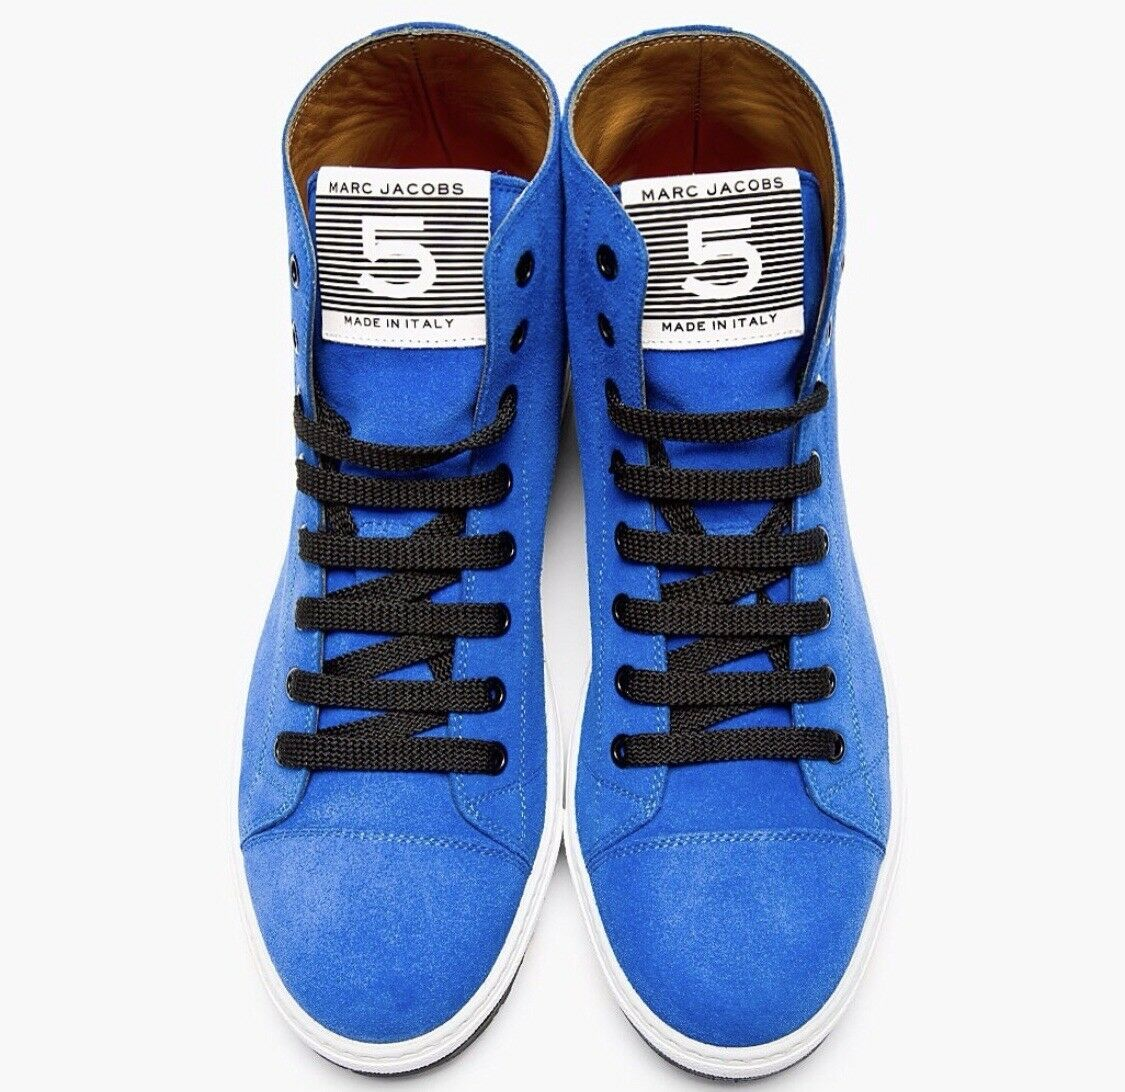 NEW! Men's Marc Jacobs Blue Suede High Top Sneakers - (Size: )